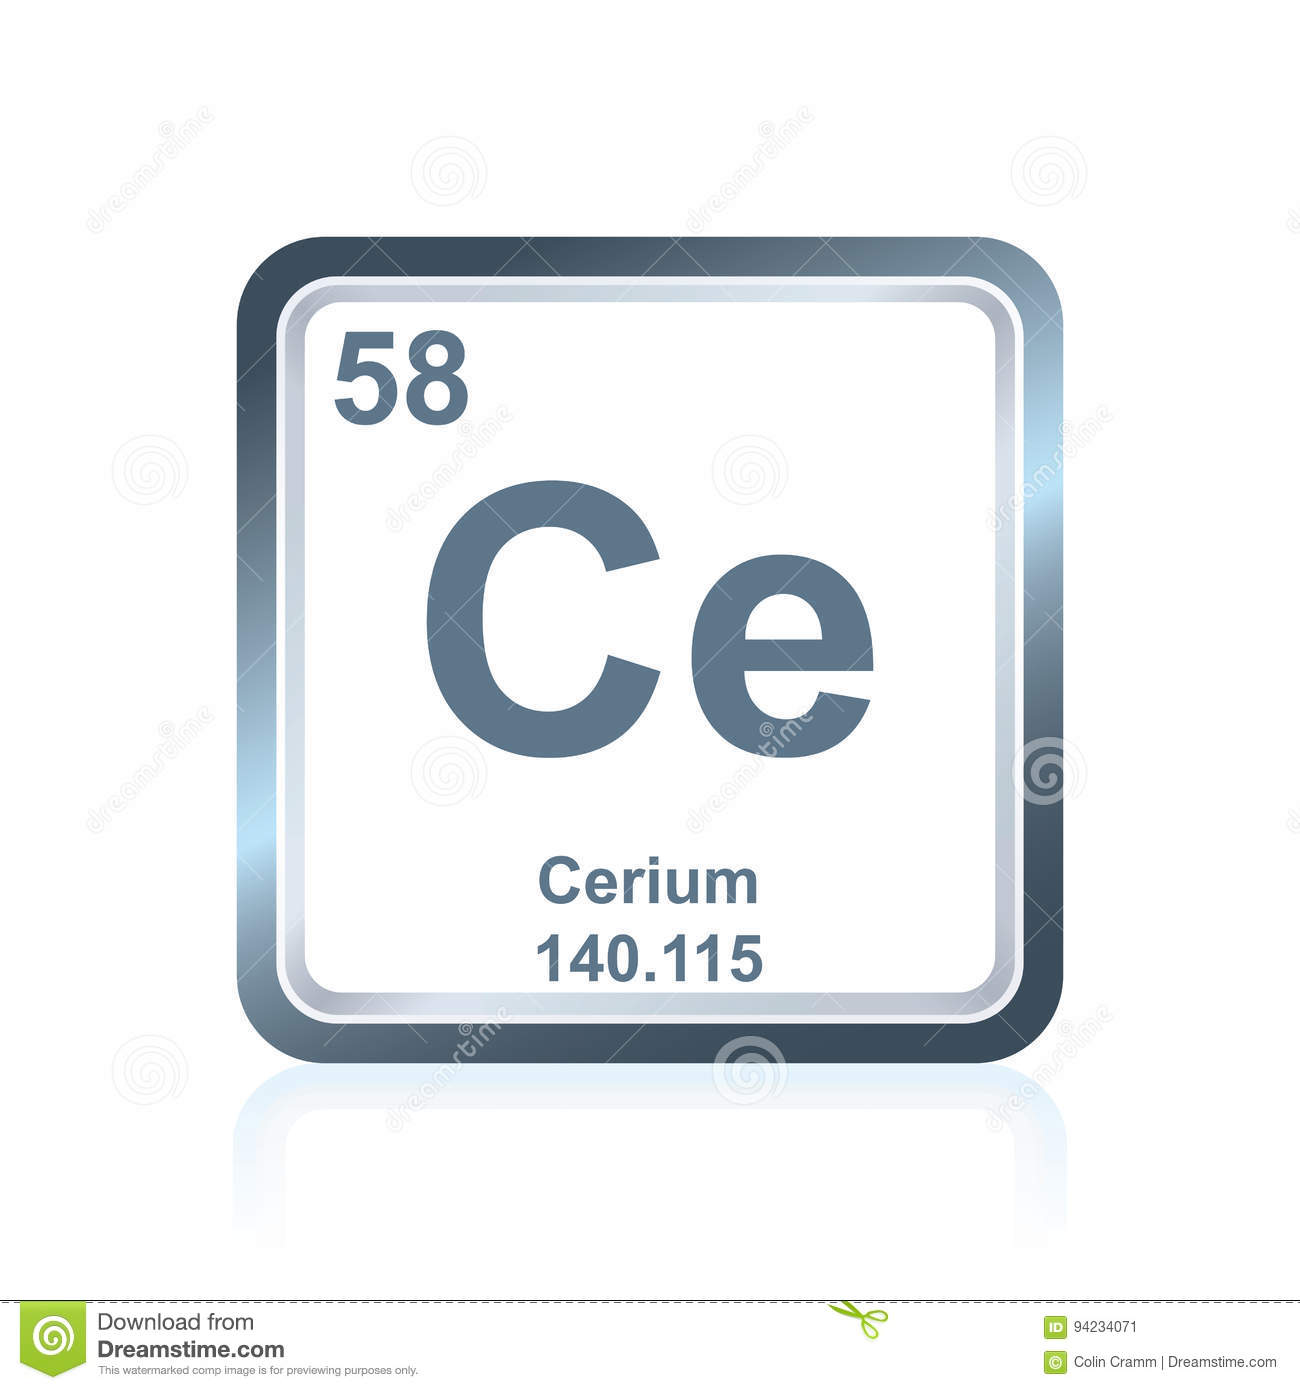 Chemical element cerium from the periodic table stock illustration download chemical element cerium from the periodic table stock illustration illustration of atomic number urtaz Images